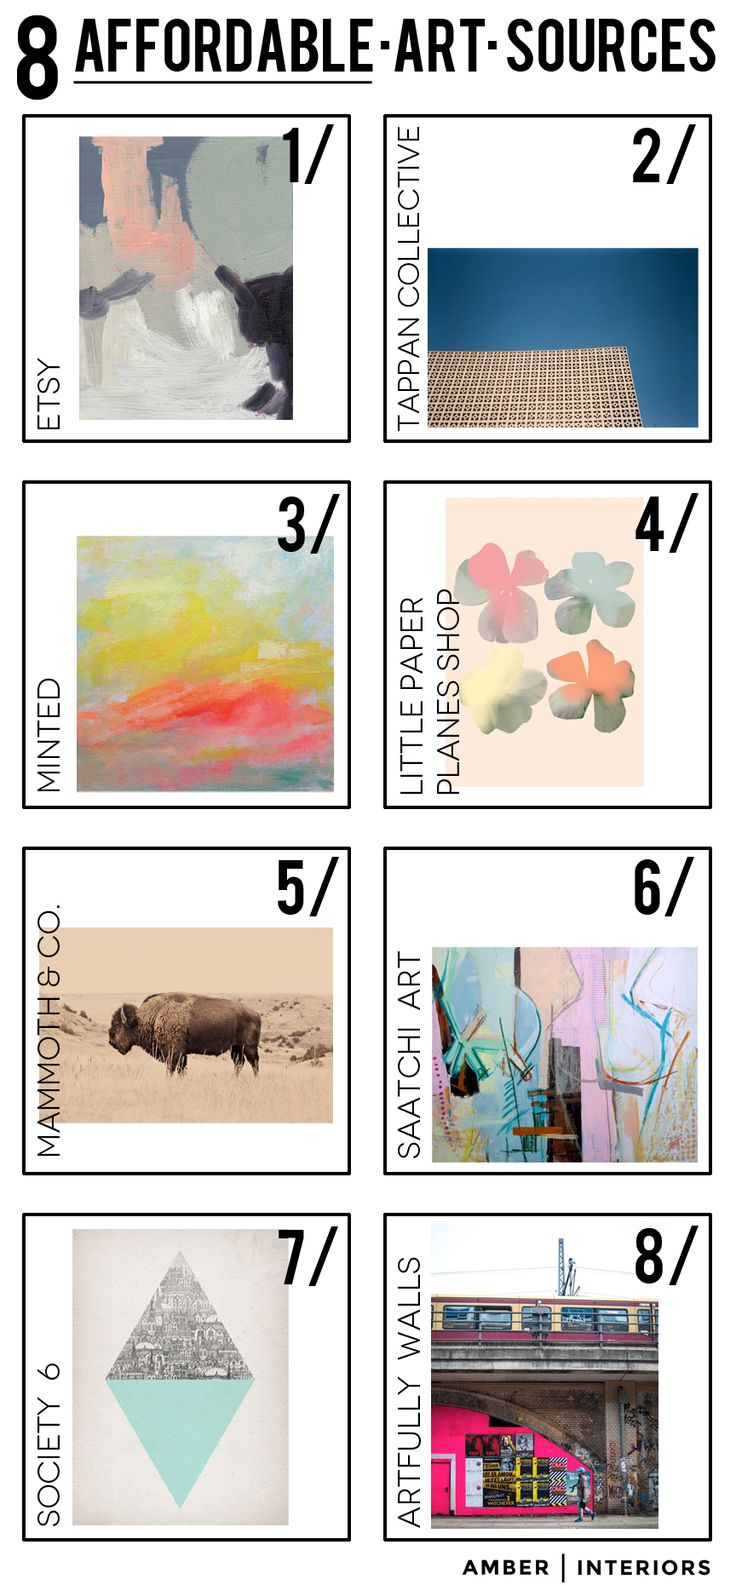 FYI: Affordable Art Resources - Amber Interiors